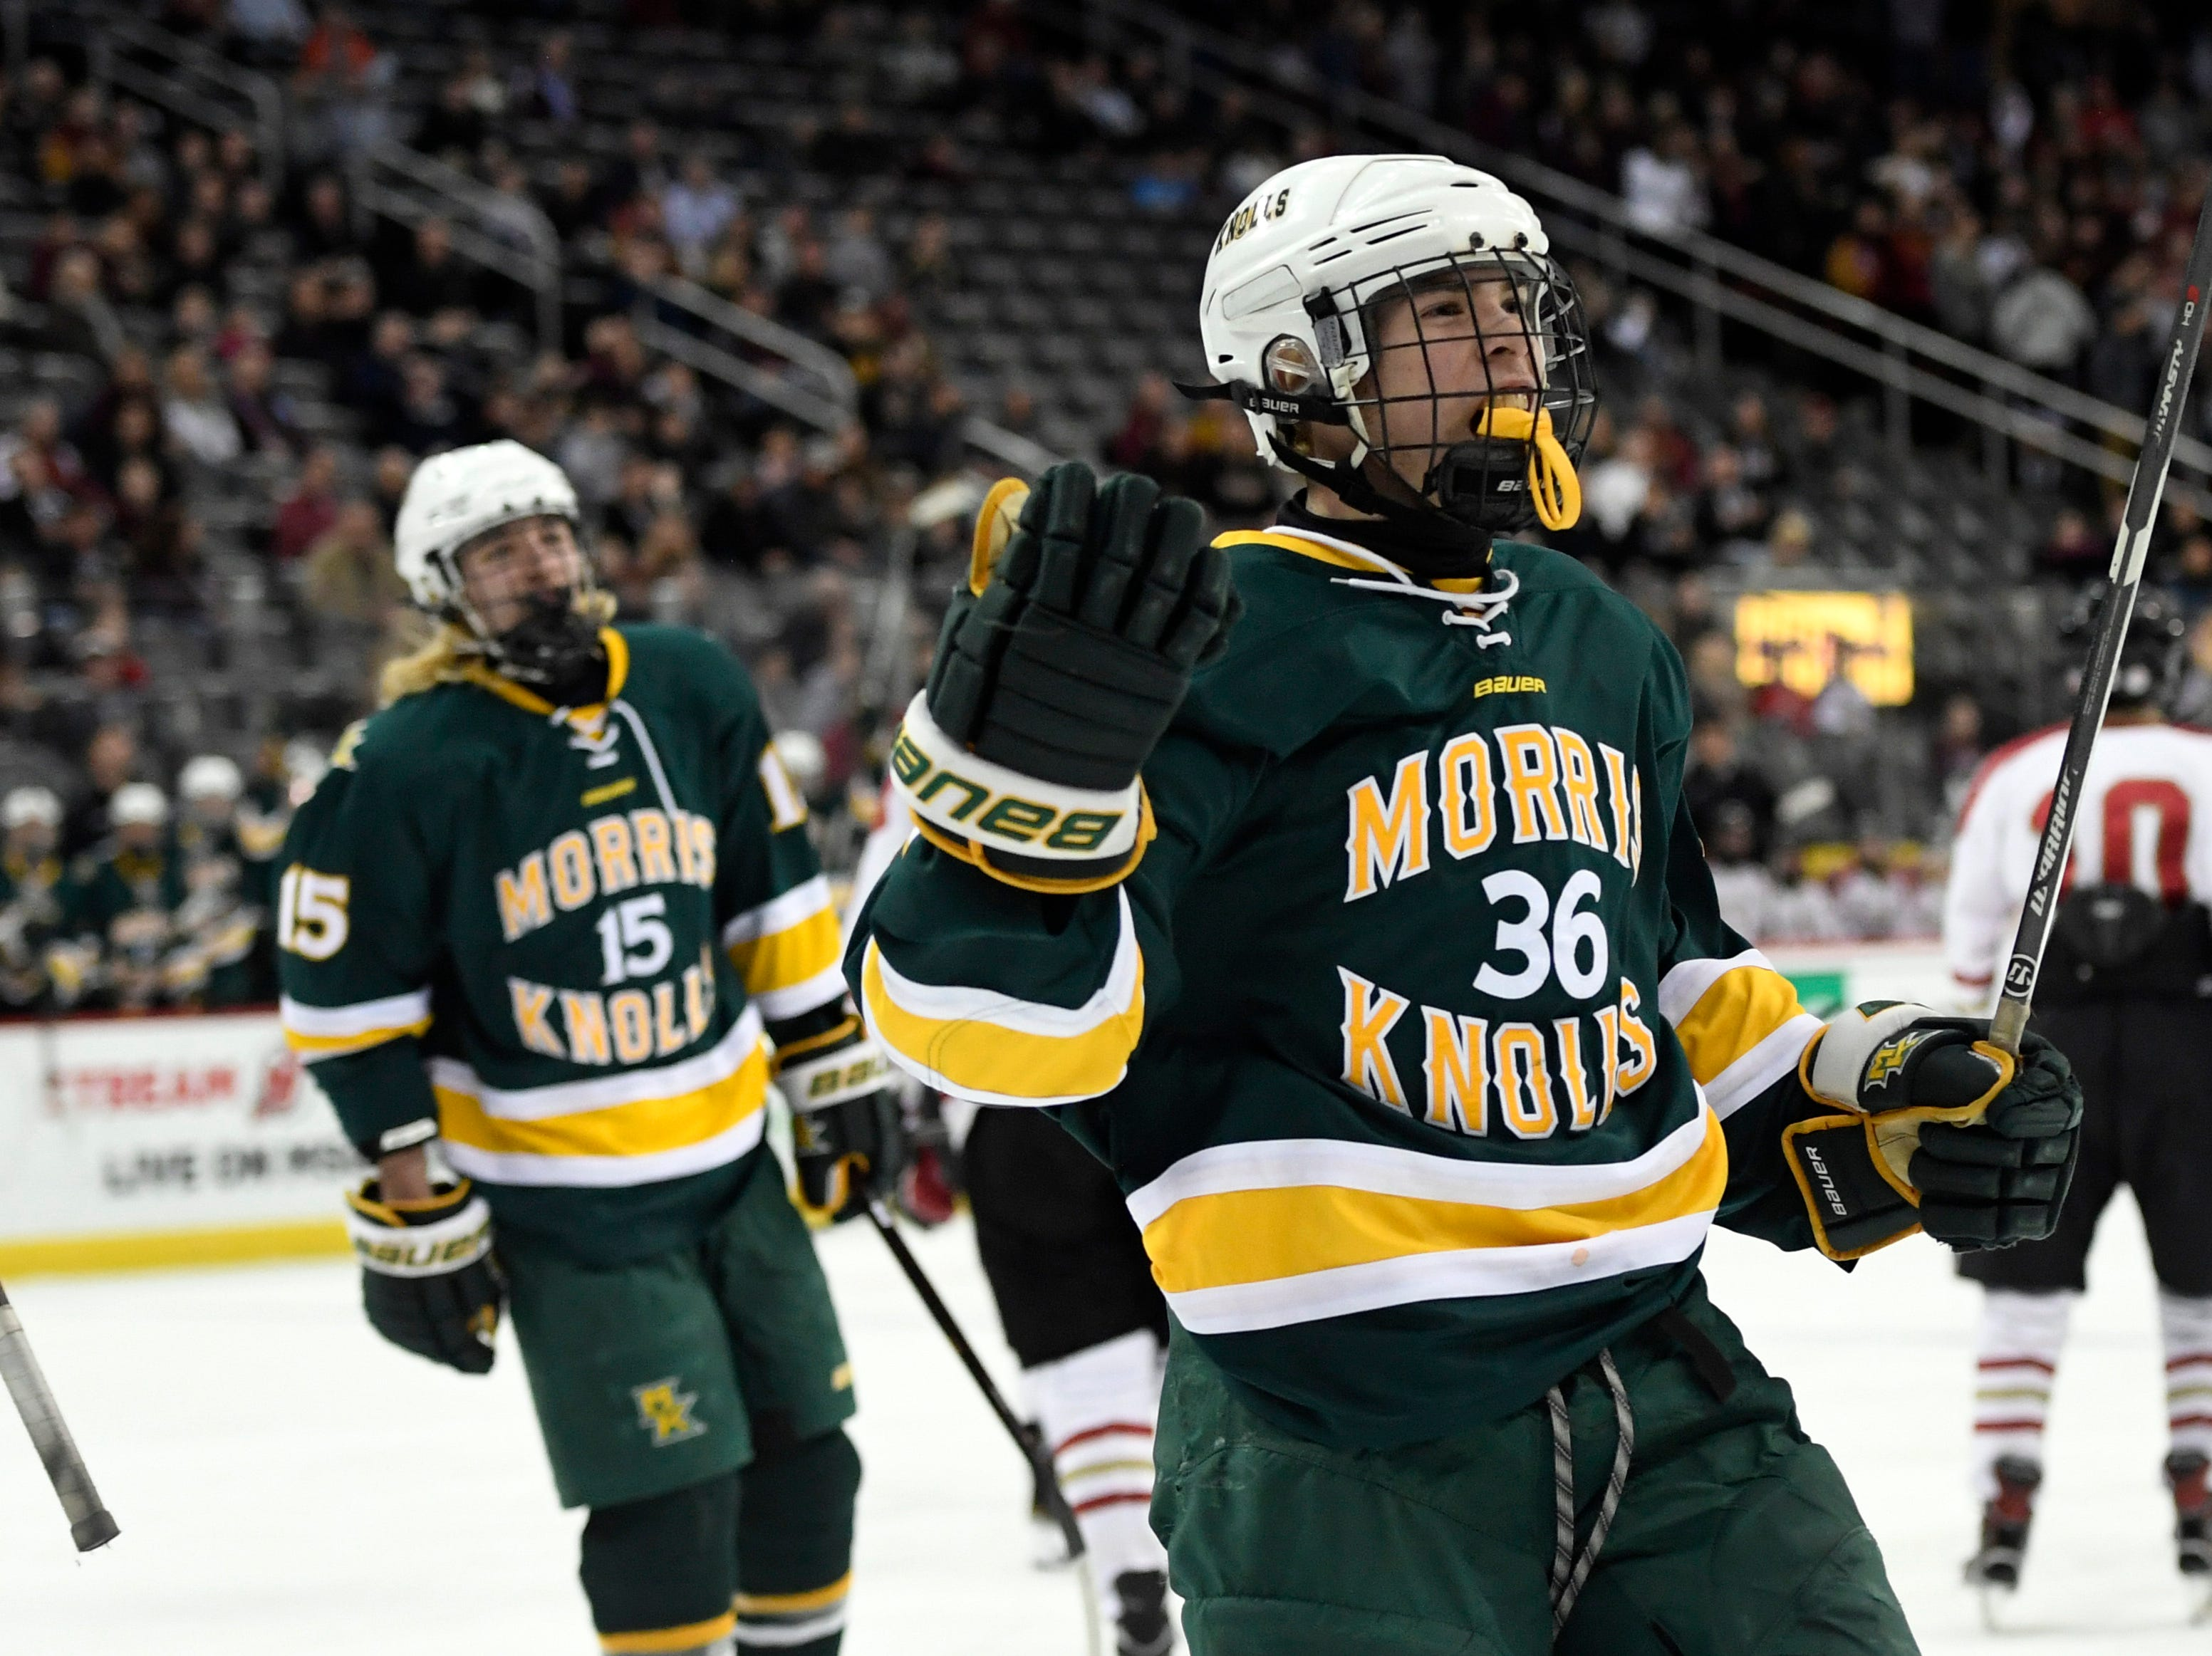 Morris Knolls/Hills' Jason Kwestel (36) celebrates his goal in the second period in the Public A ice hockey final at the Prudential Center on Monday, March 4, 2019, in Newark.